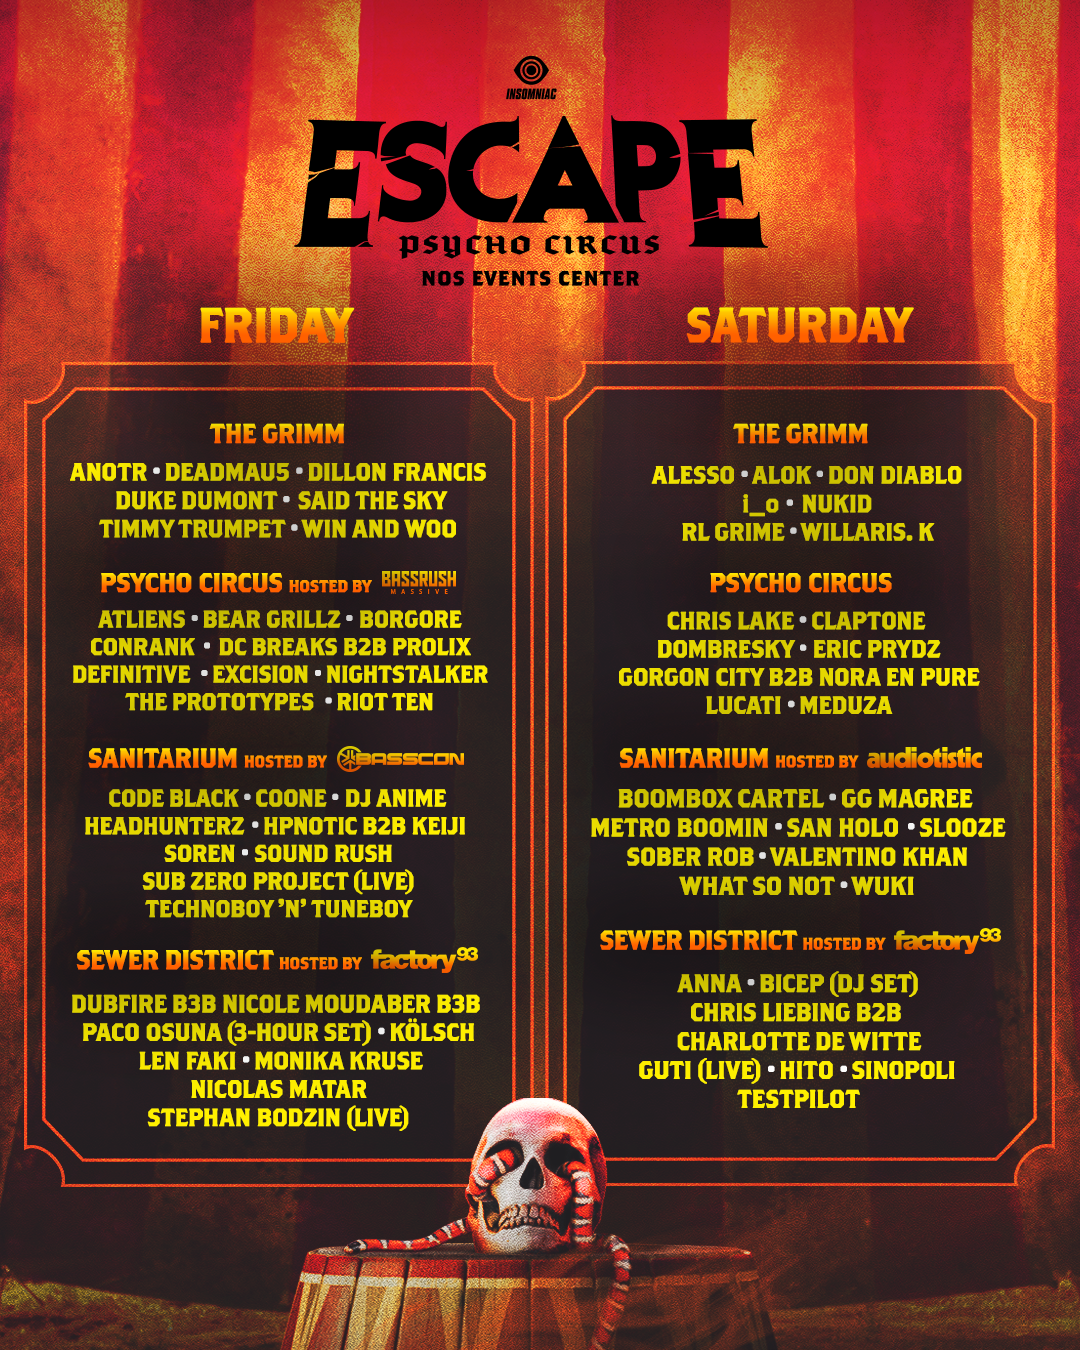 Escape line up by day by stage